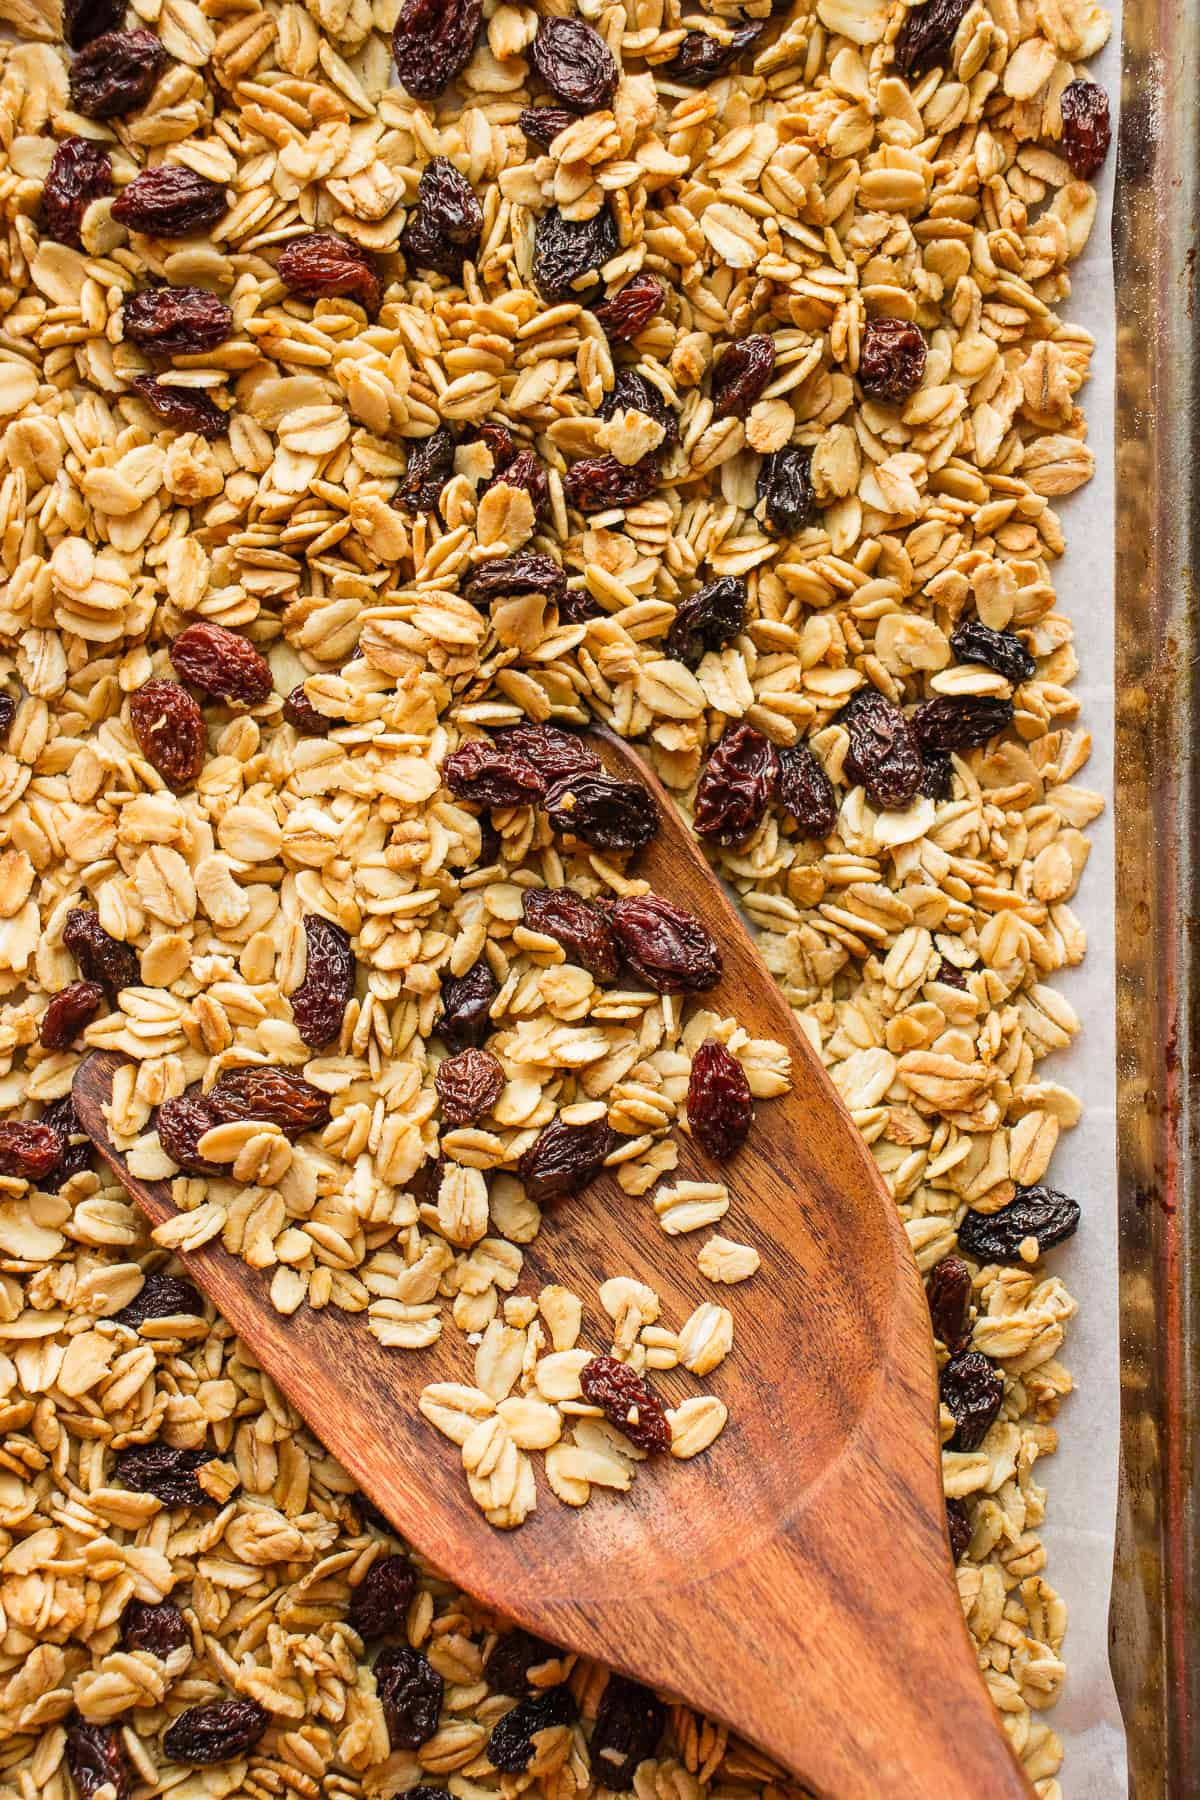 A wooden spoon full of granola